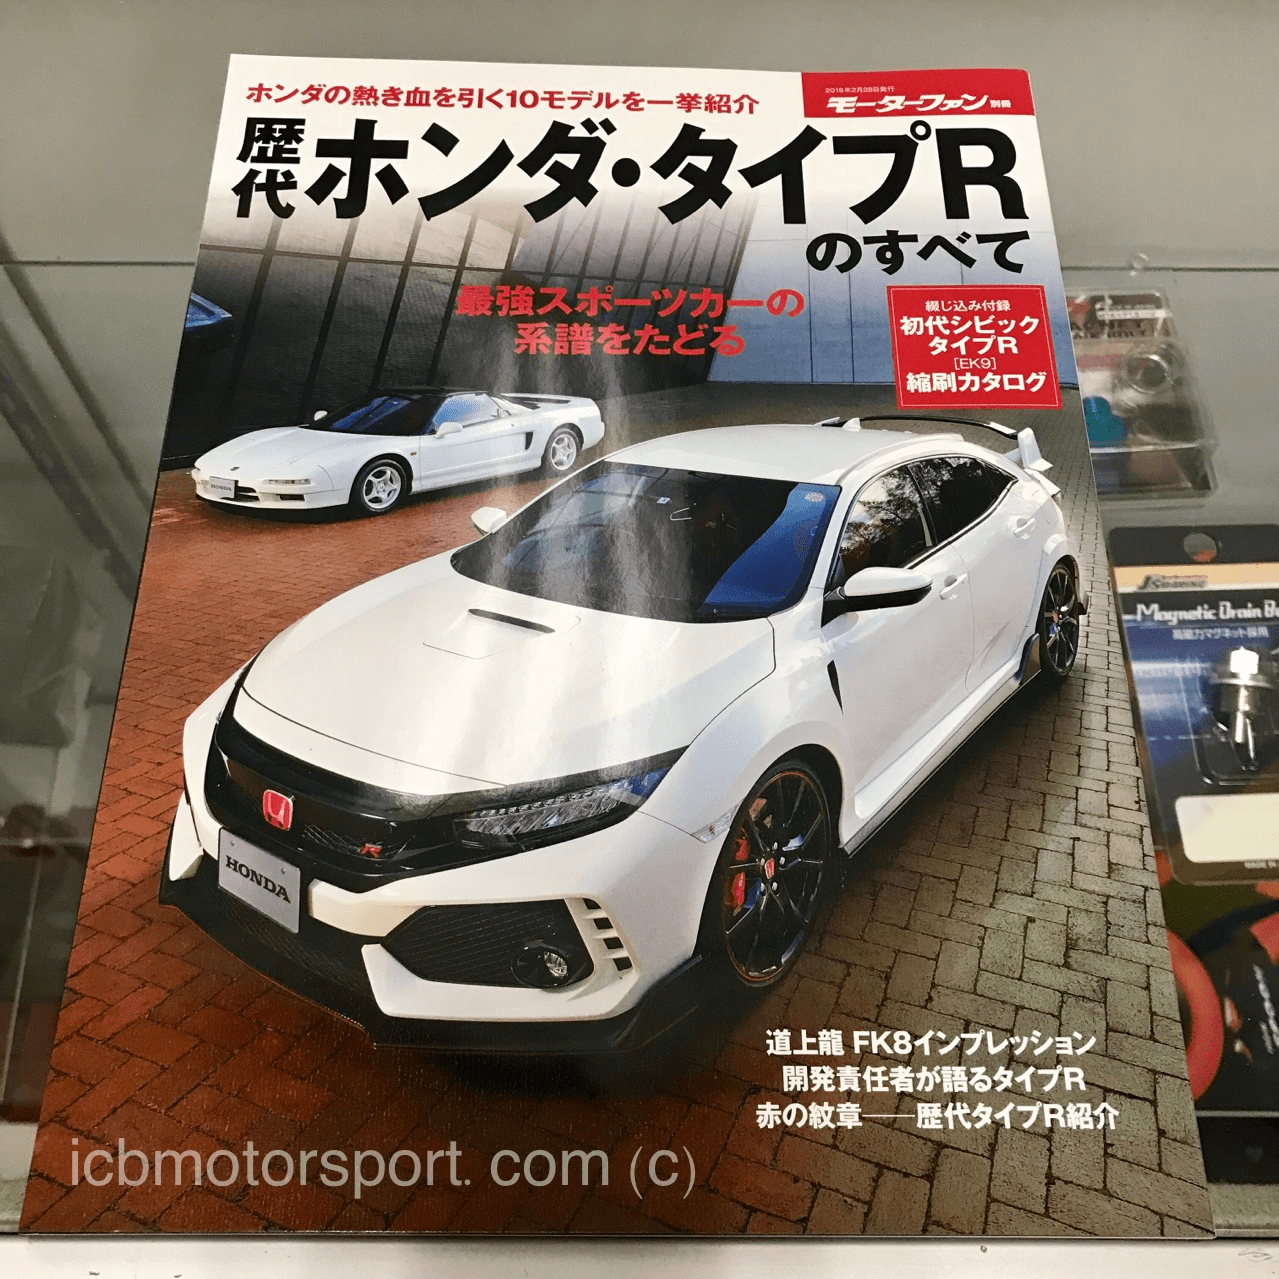 Honda Civic FK8 Type-R Perfect Guide with Tribute to all other Type Rs (NSX NA1/NA2 Civic EK9/EP3/FD2/FK8 Integra DC2/DC5)